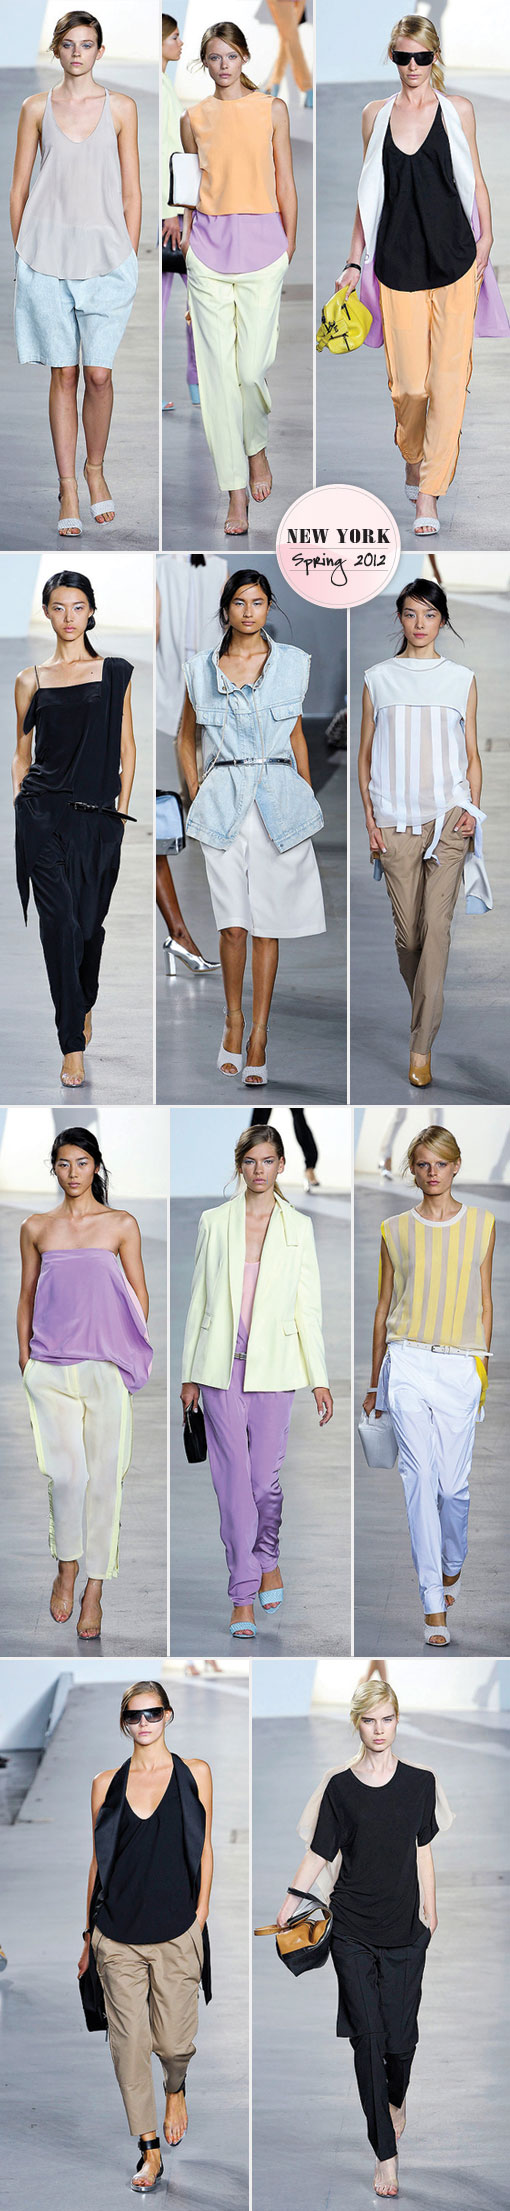 Phillip Lim Brings Out The Brights For Spring 2012